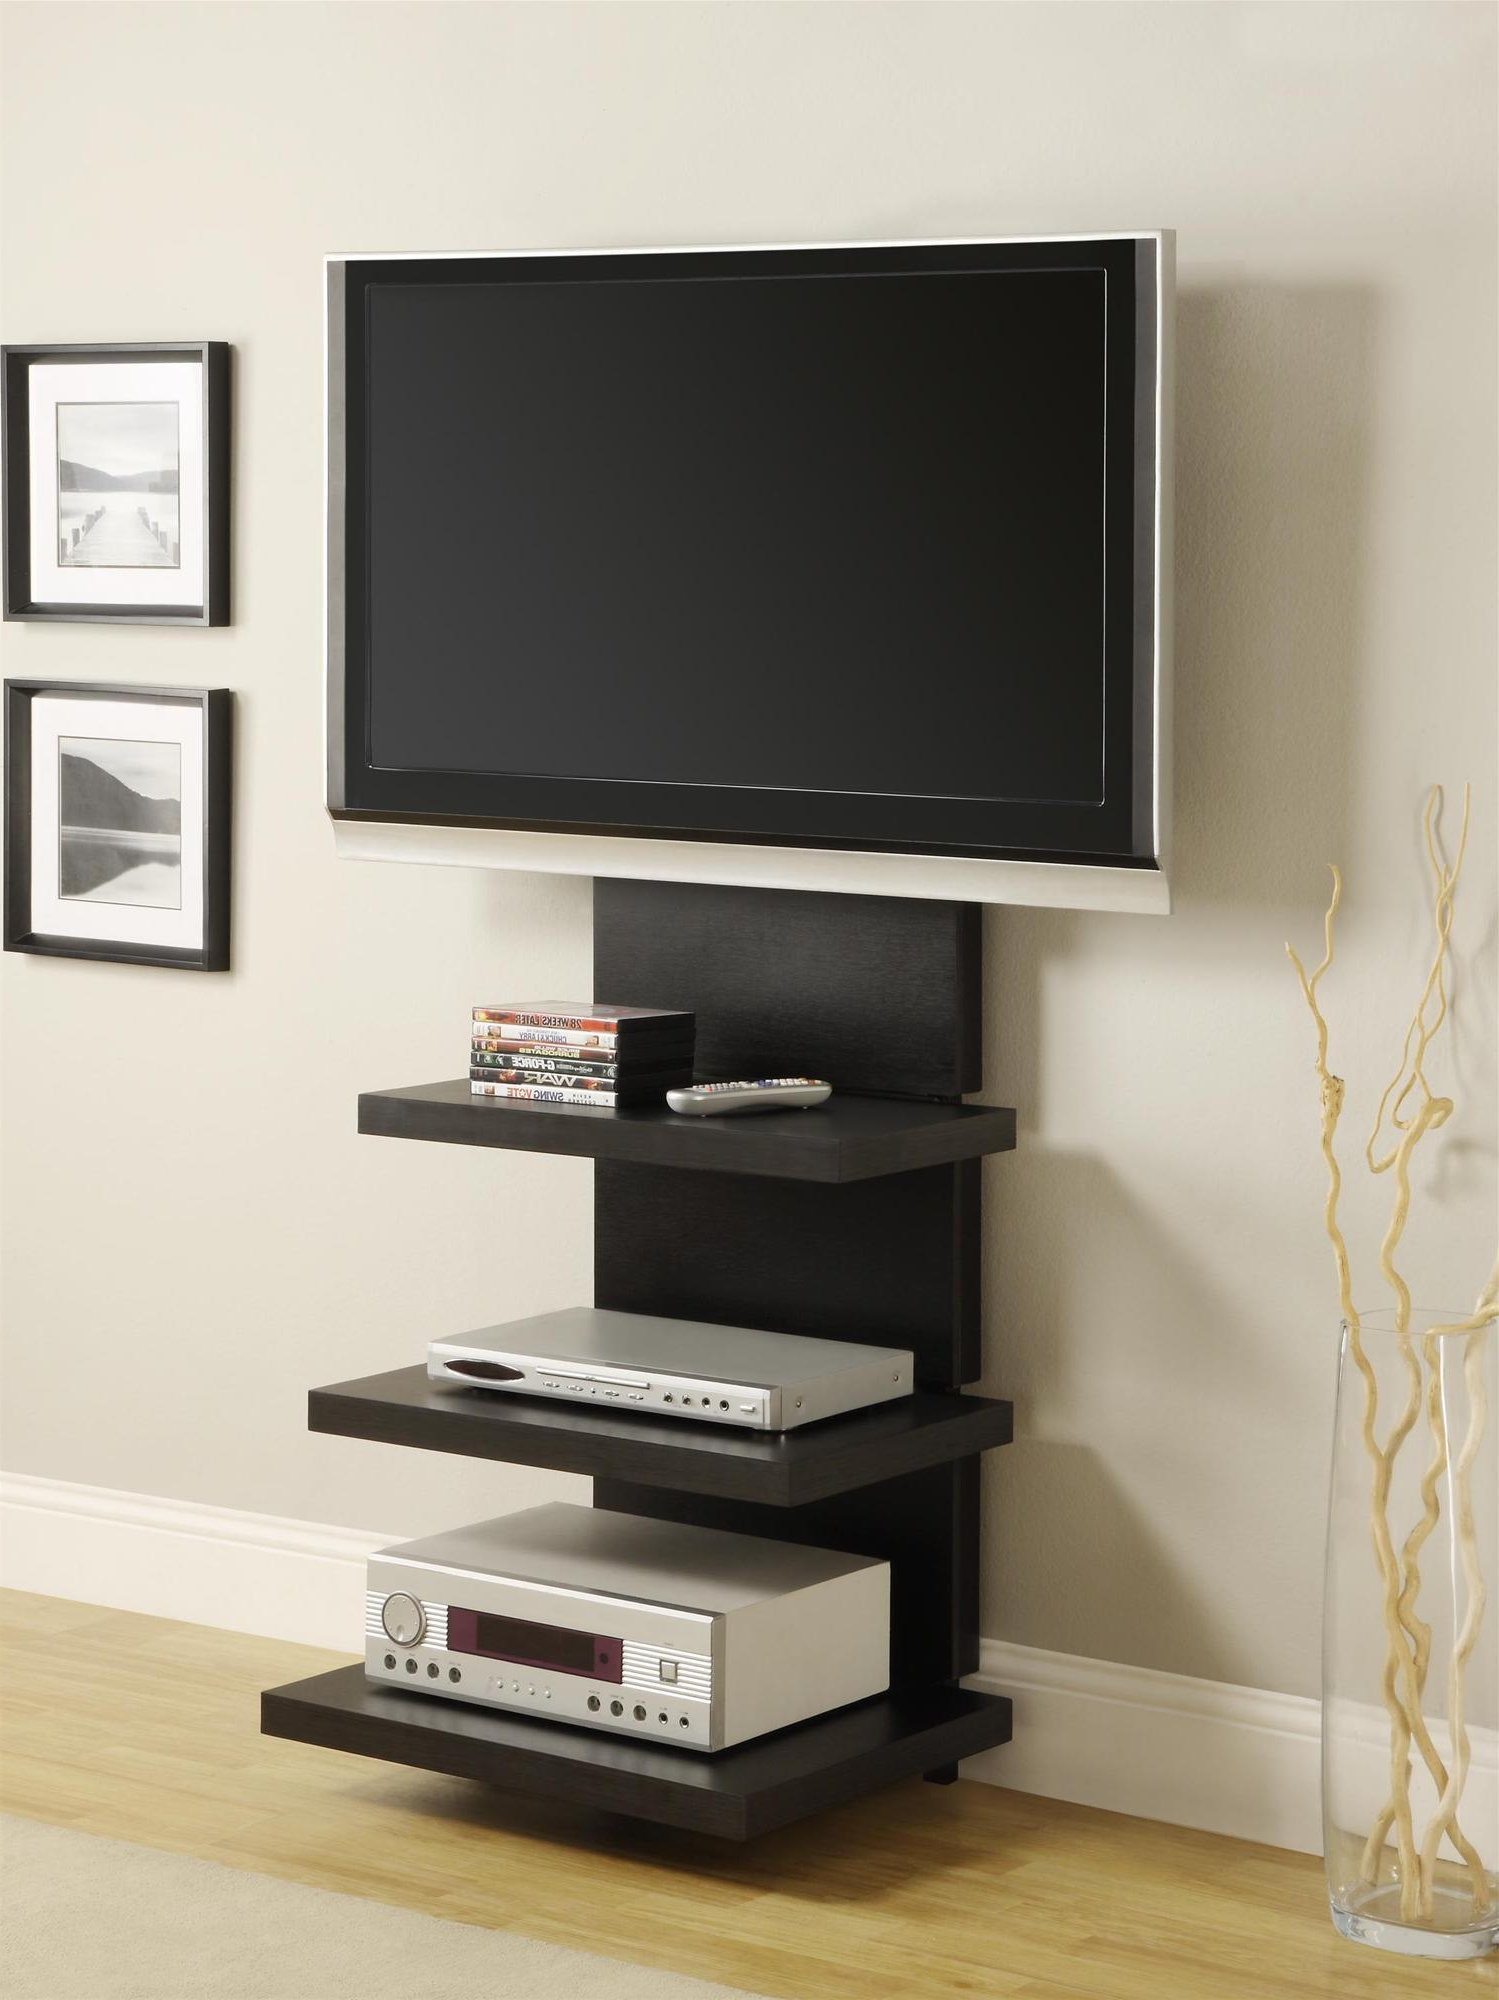 Dillon Black Tv Unit Stands In 2018 Wall Mount Tv Stand With 3 Shelves, Black, For Tvs Up To (View 1 of 10)